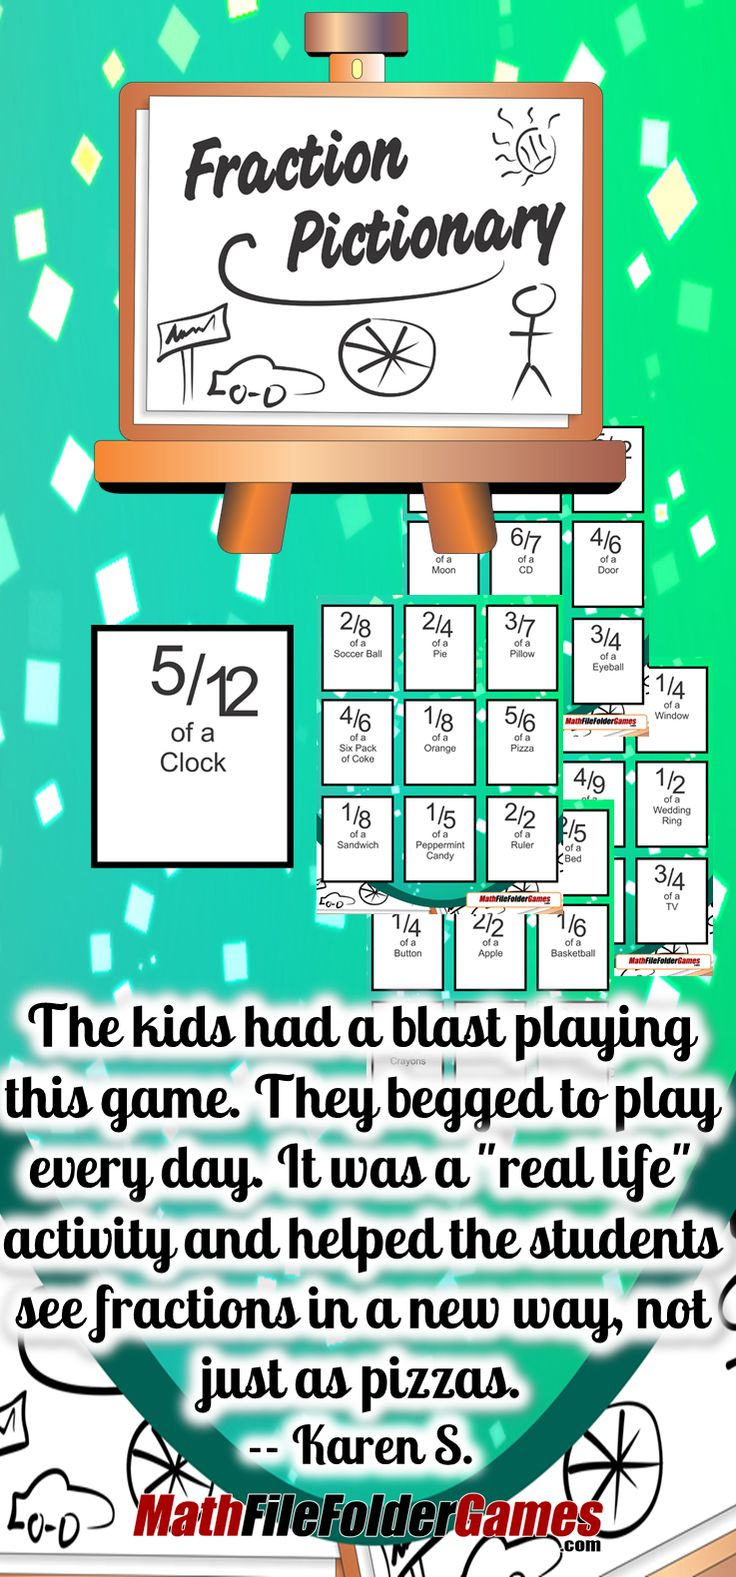 174 best math images on Pinterest | Math activities, Math games and ...